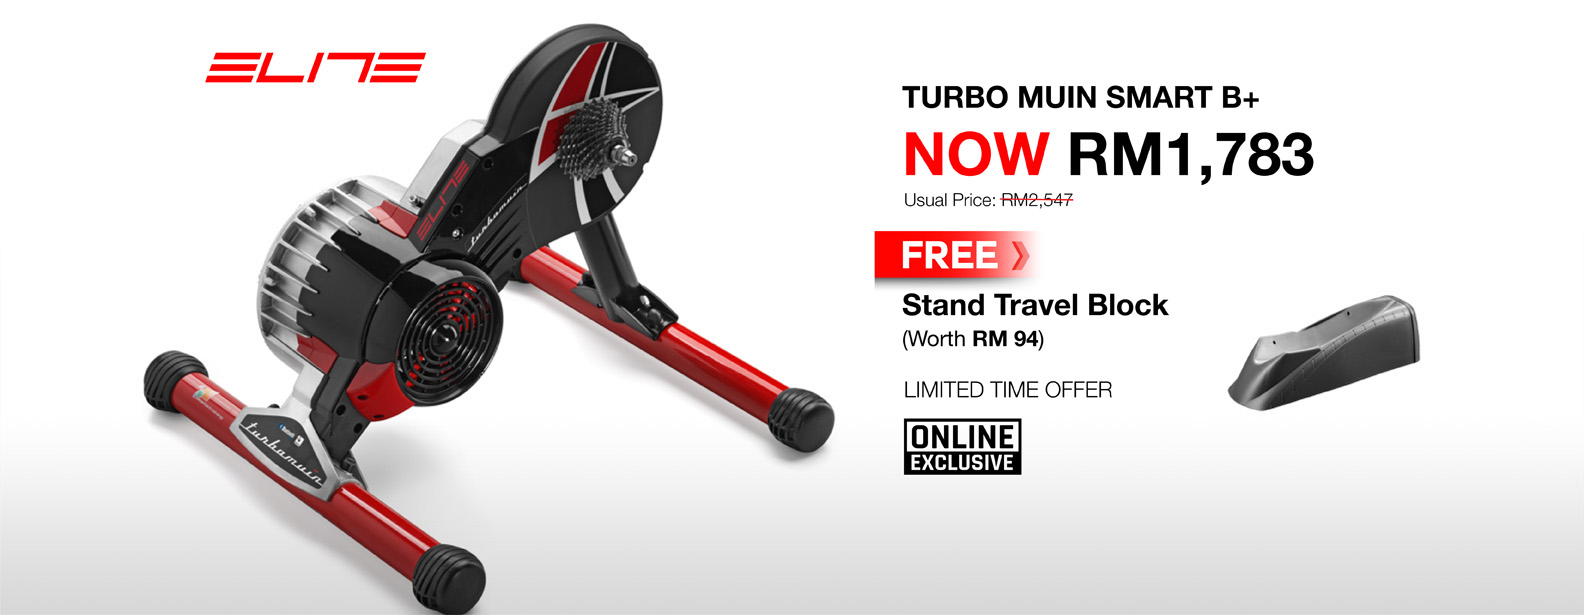 MY Buy Elite Turbo Muin Smart B+ Trainer Free Stand Travel Block